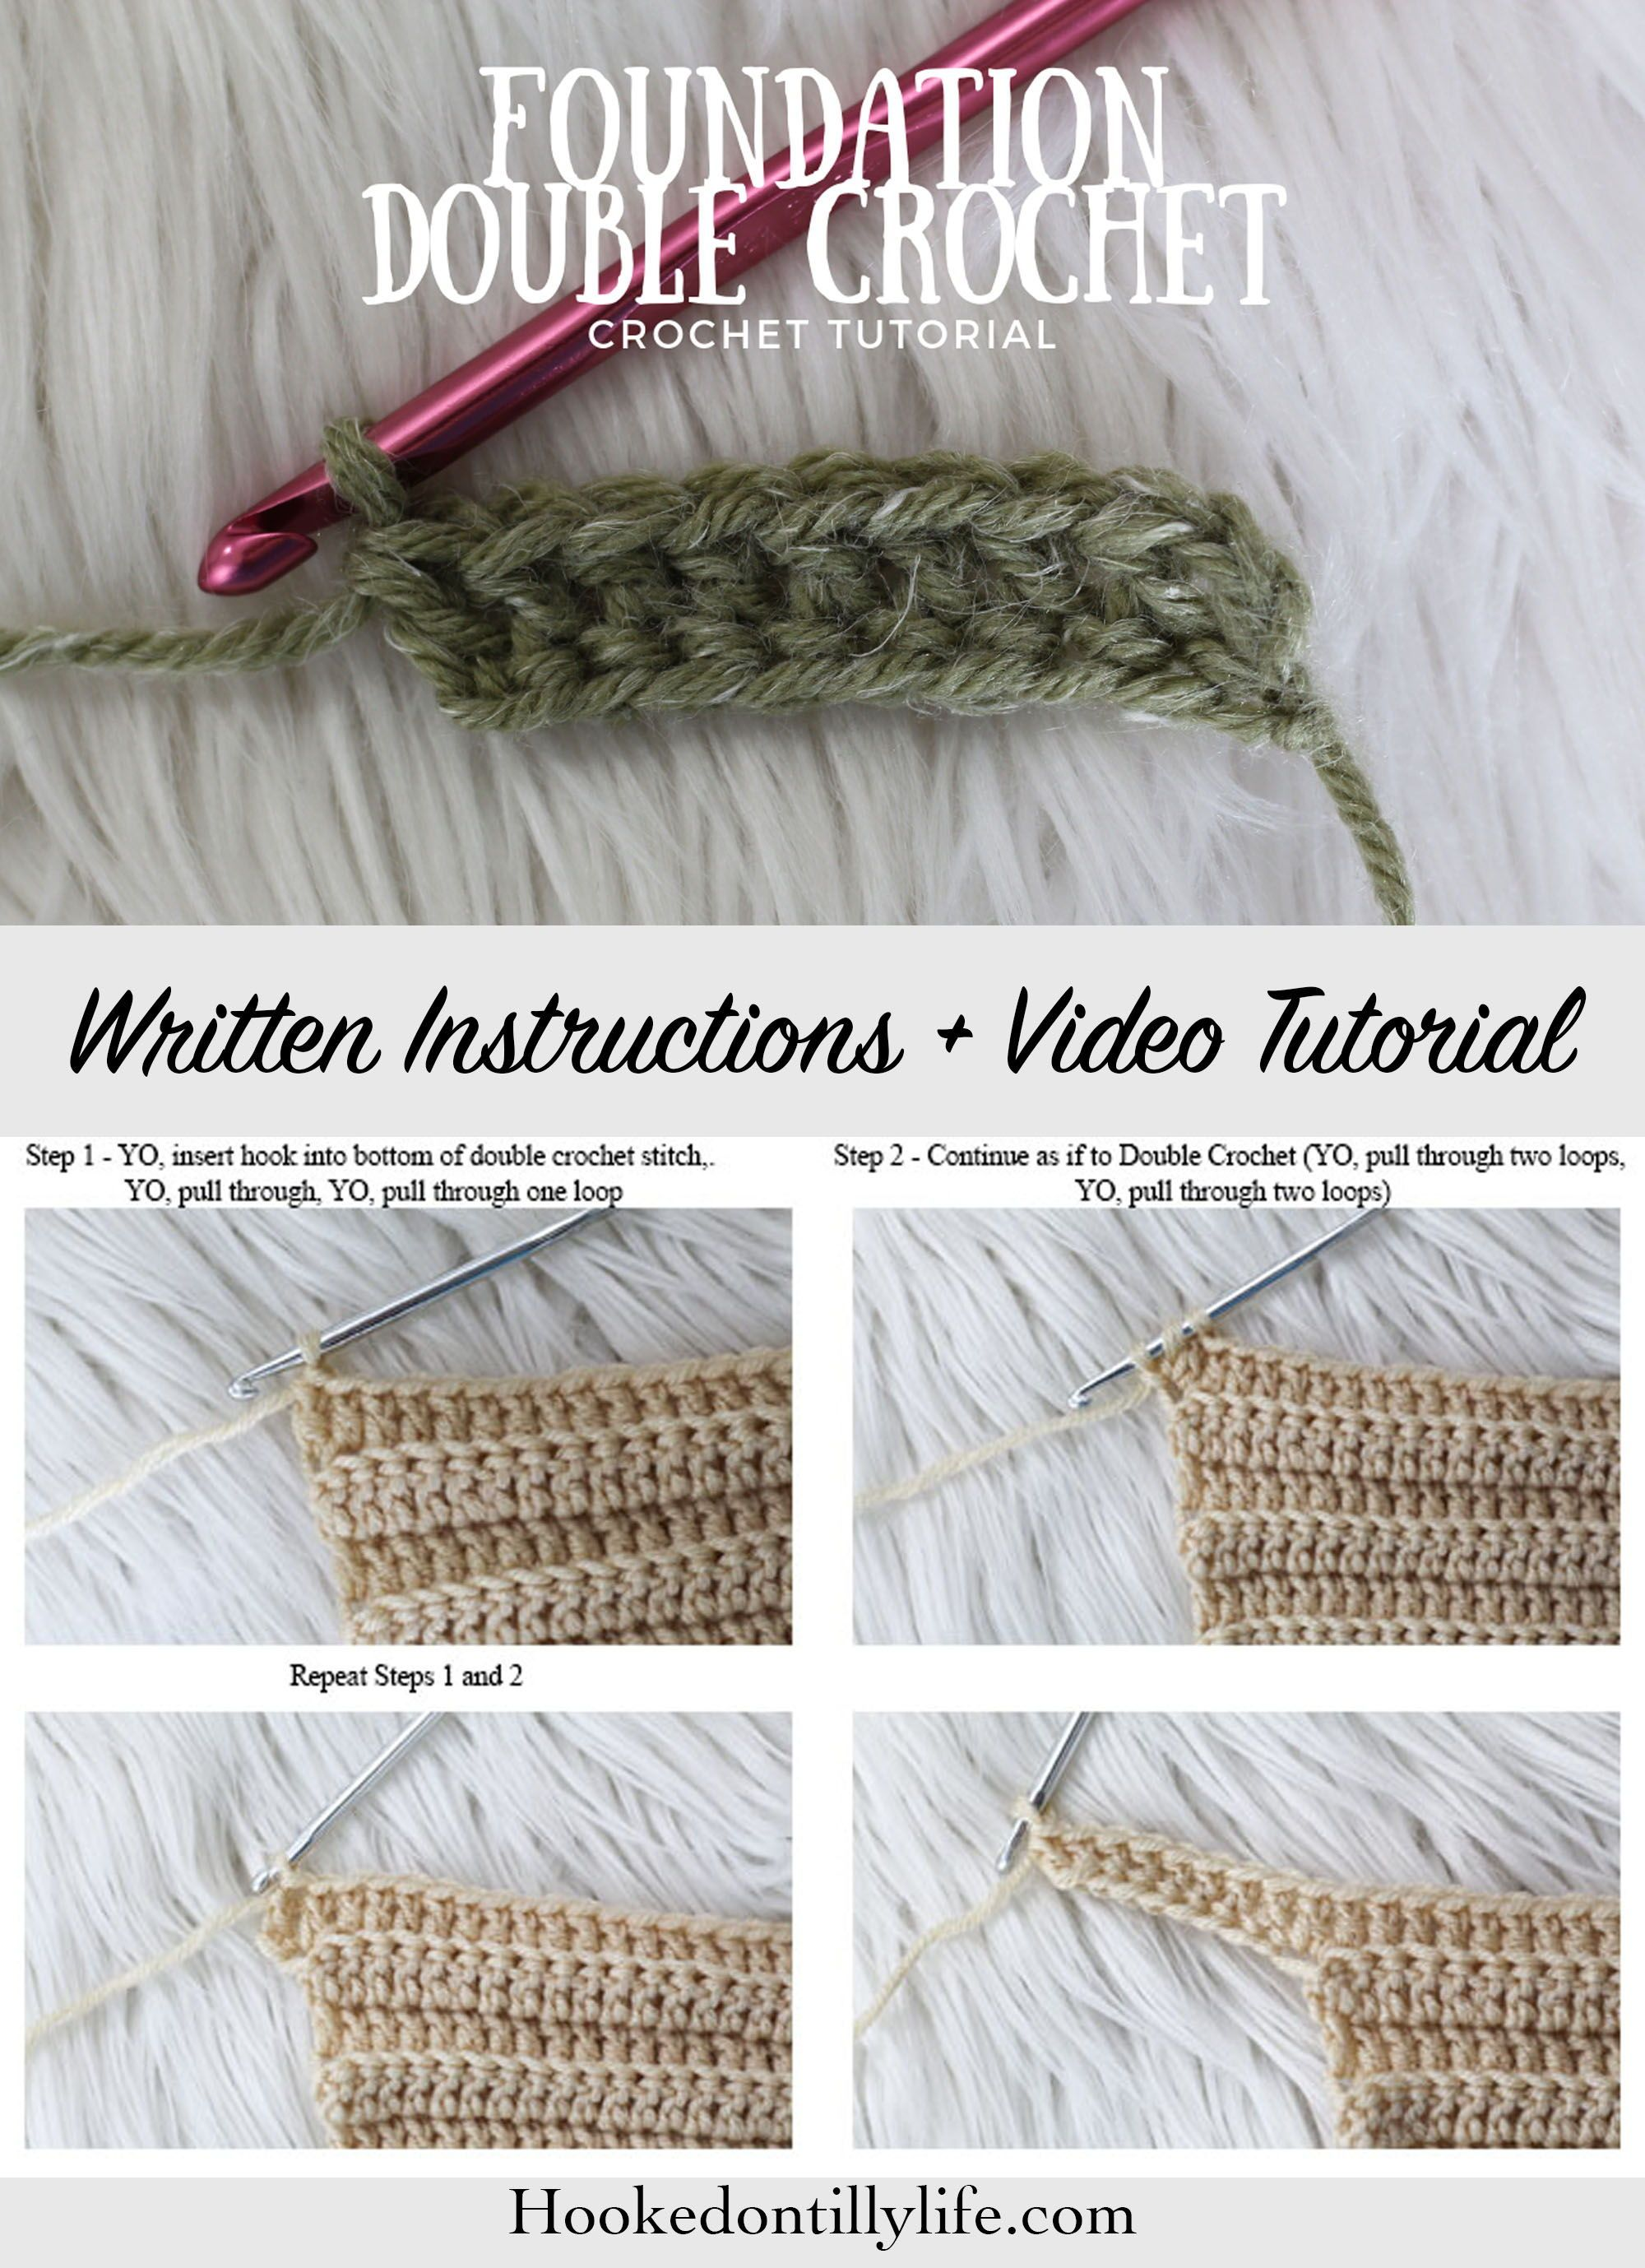 Foundation Double Crochet Crochet Stitch Best Knitting And